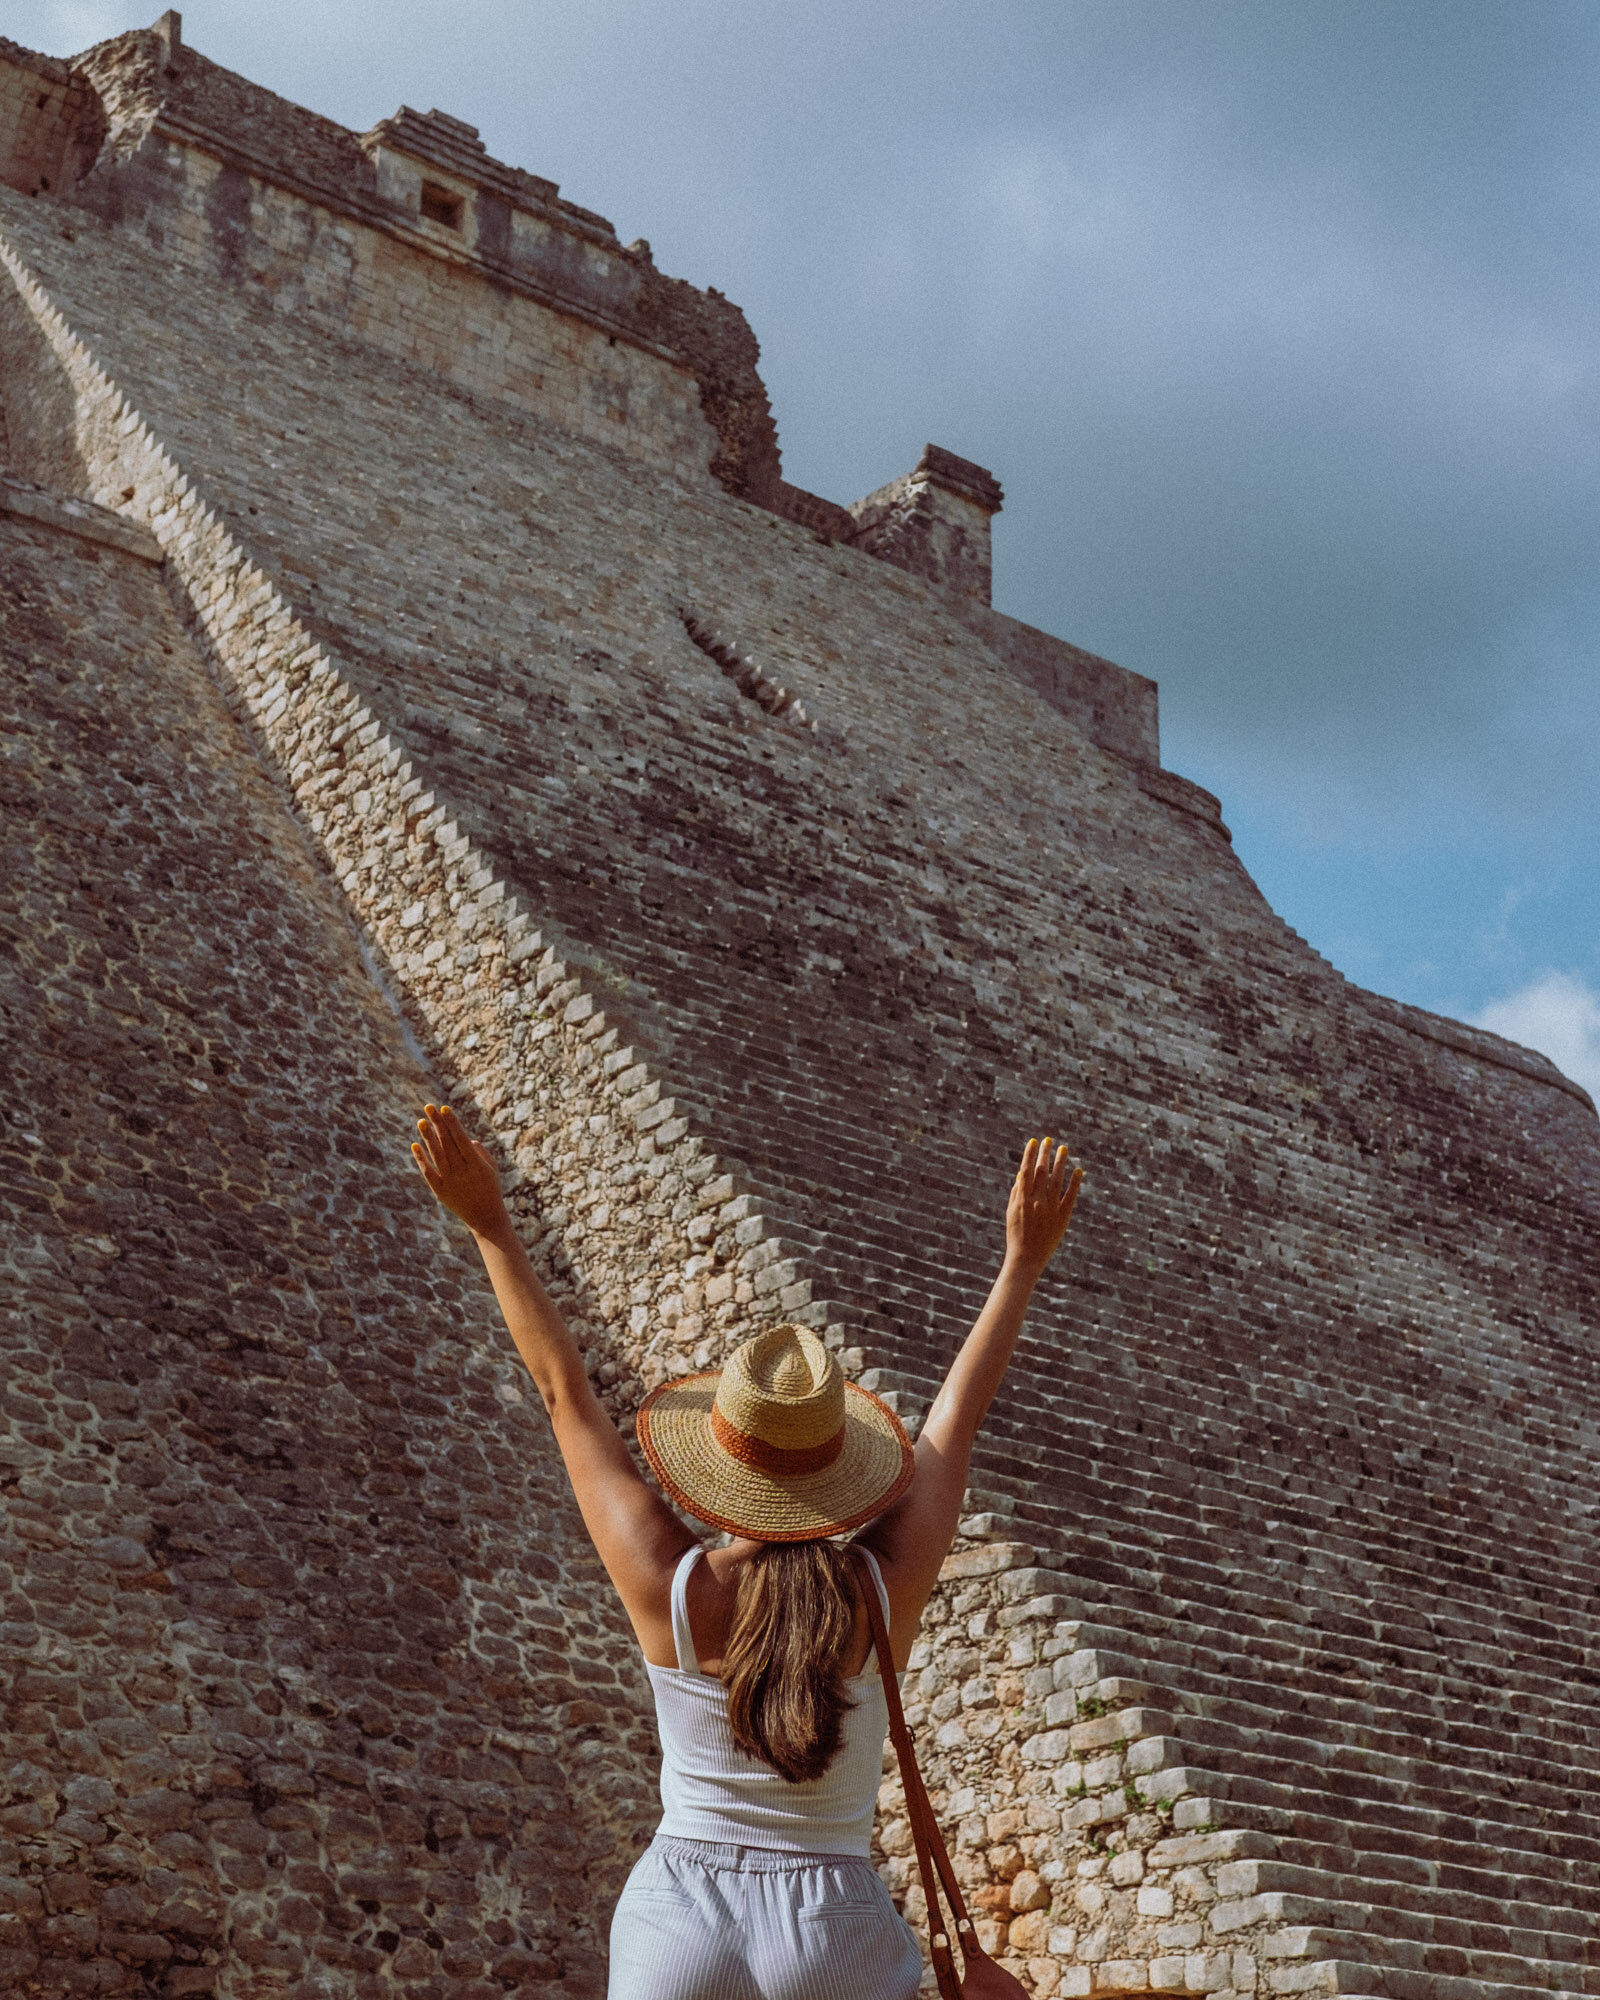 Rachel Off Duty: A Woman Stands in Front of the Pyramid of the Magician at Uxmal, Mexico